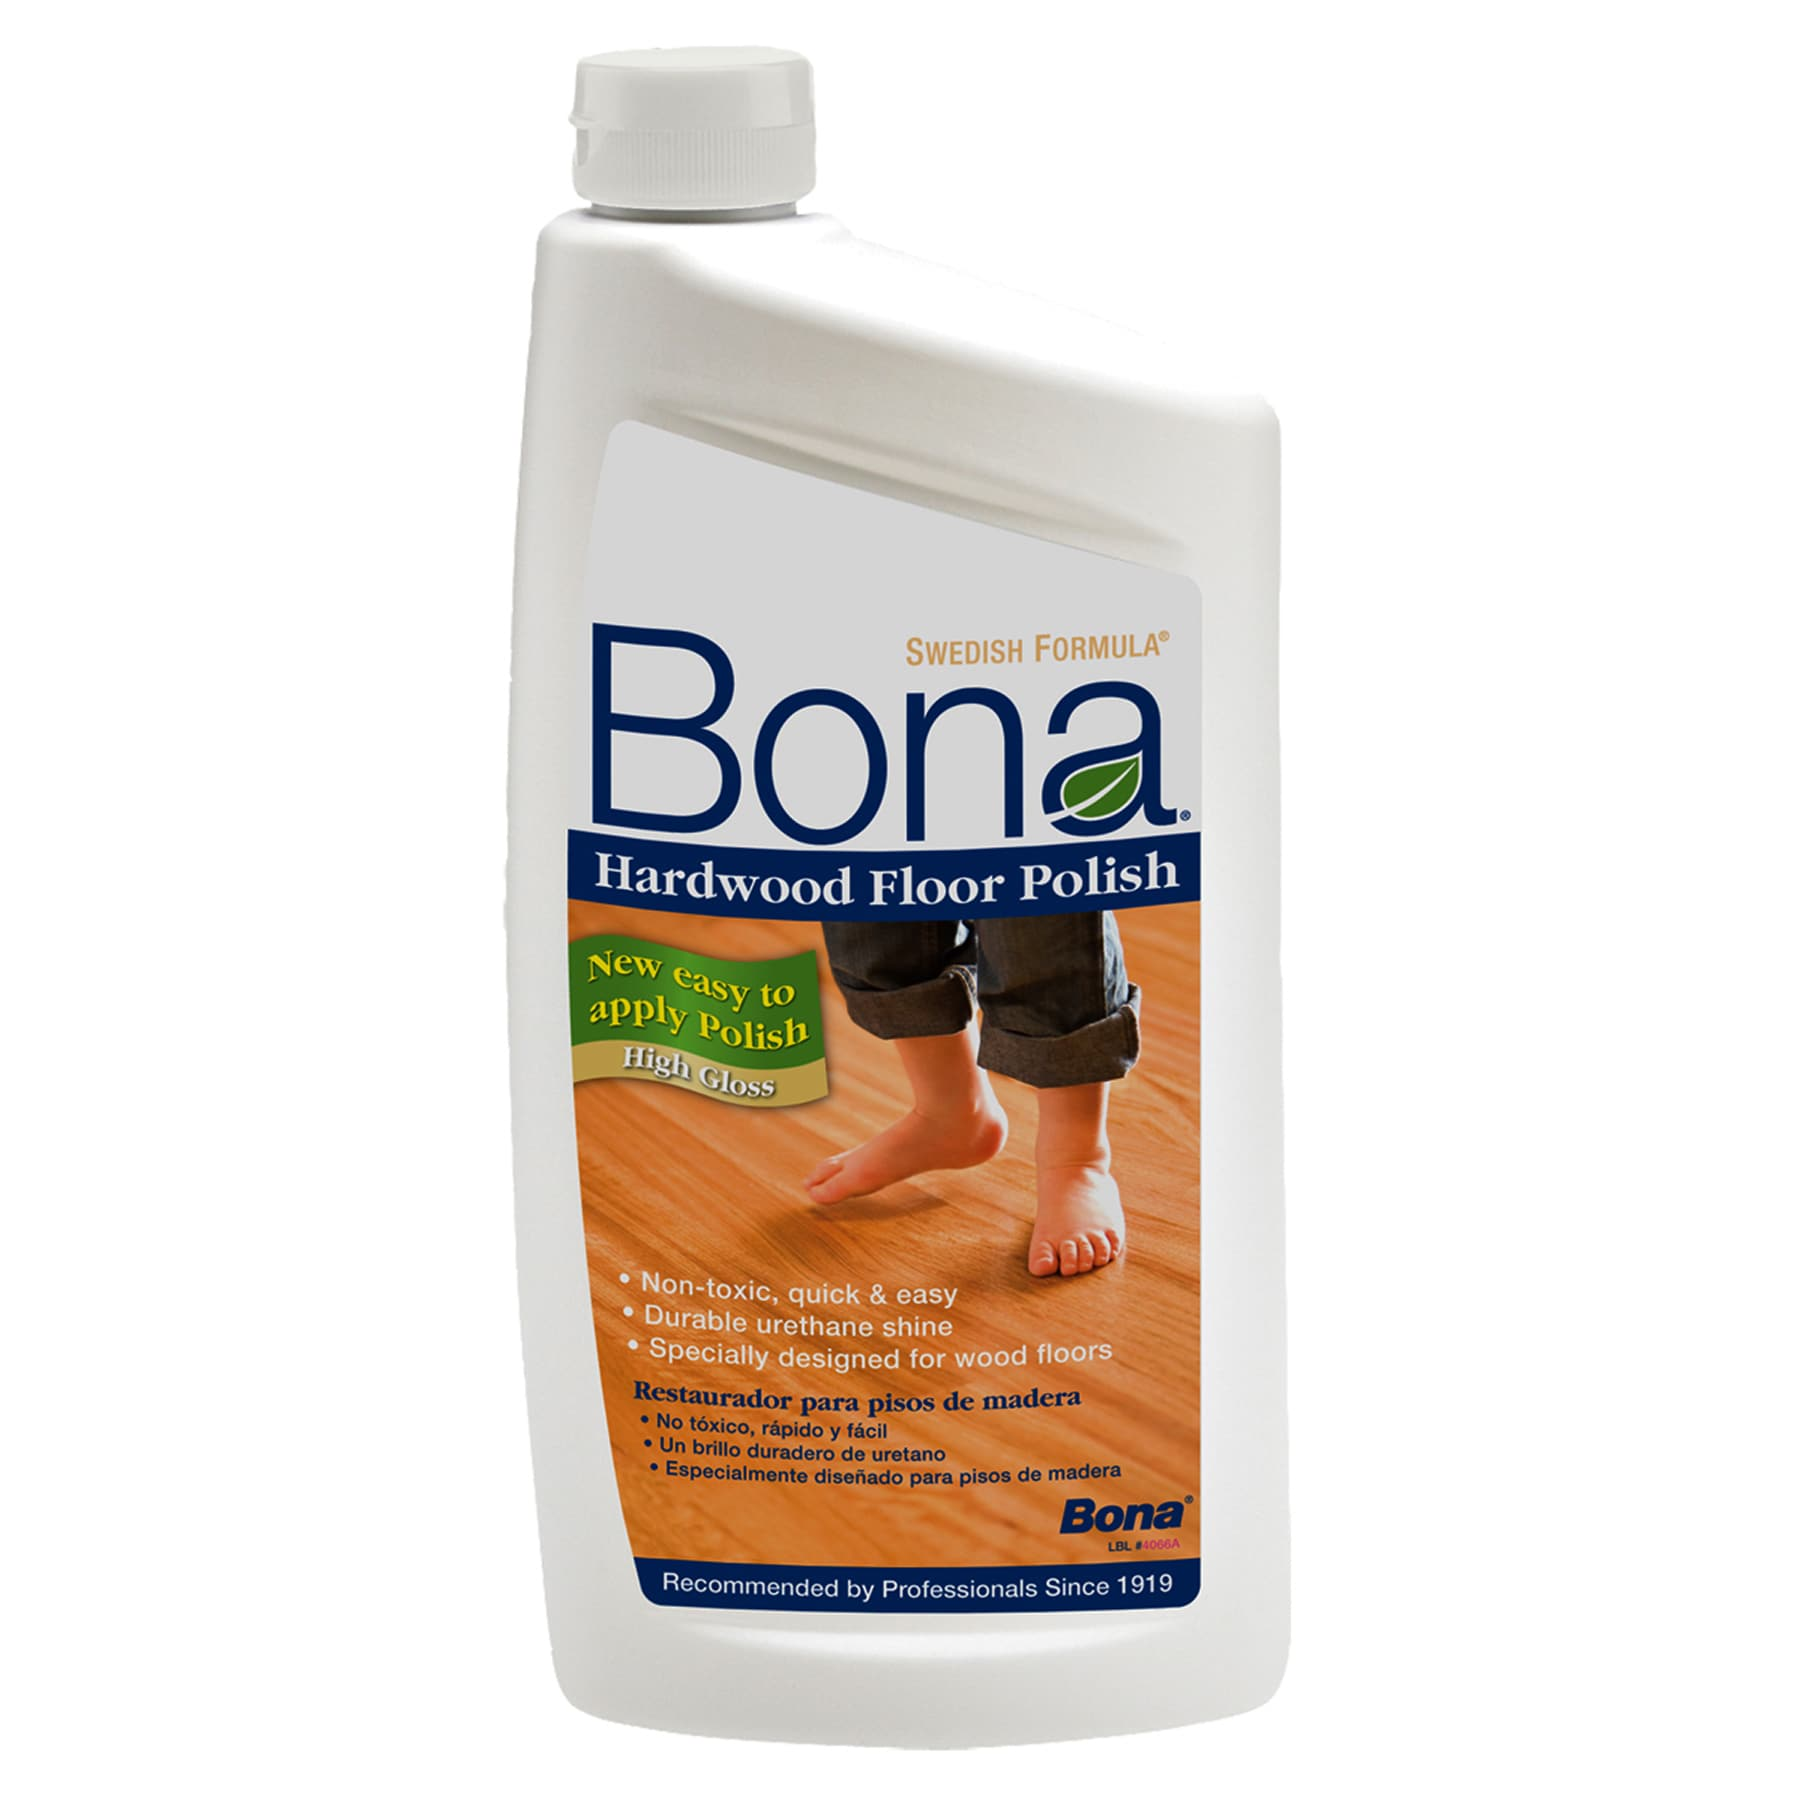 Bona WP510059001 36 Oz Hardwood Floor Polish (Hrdwd Flr P...